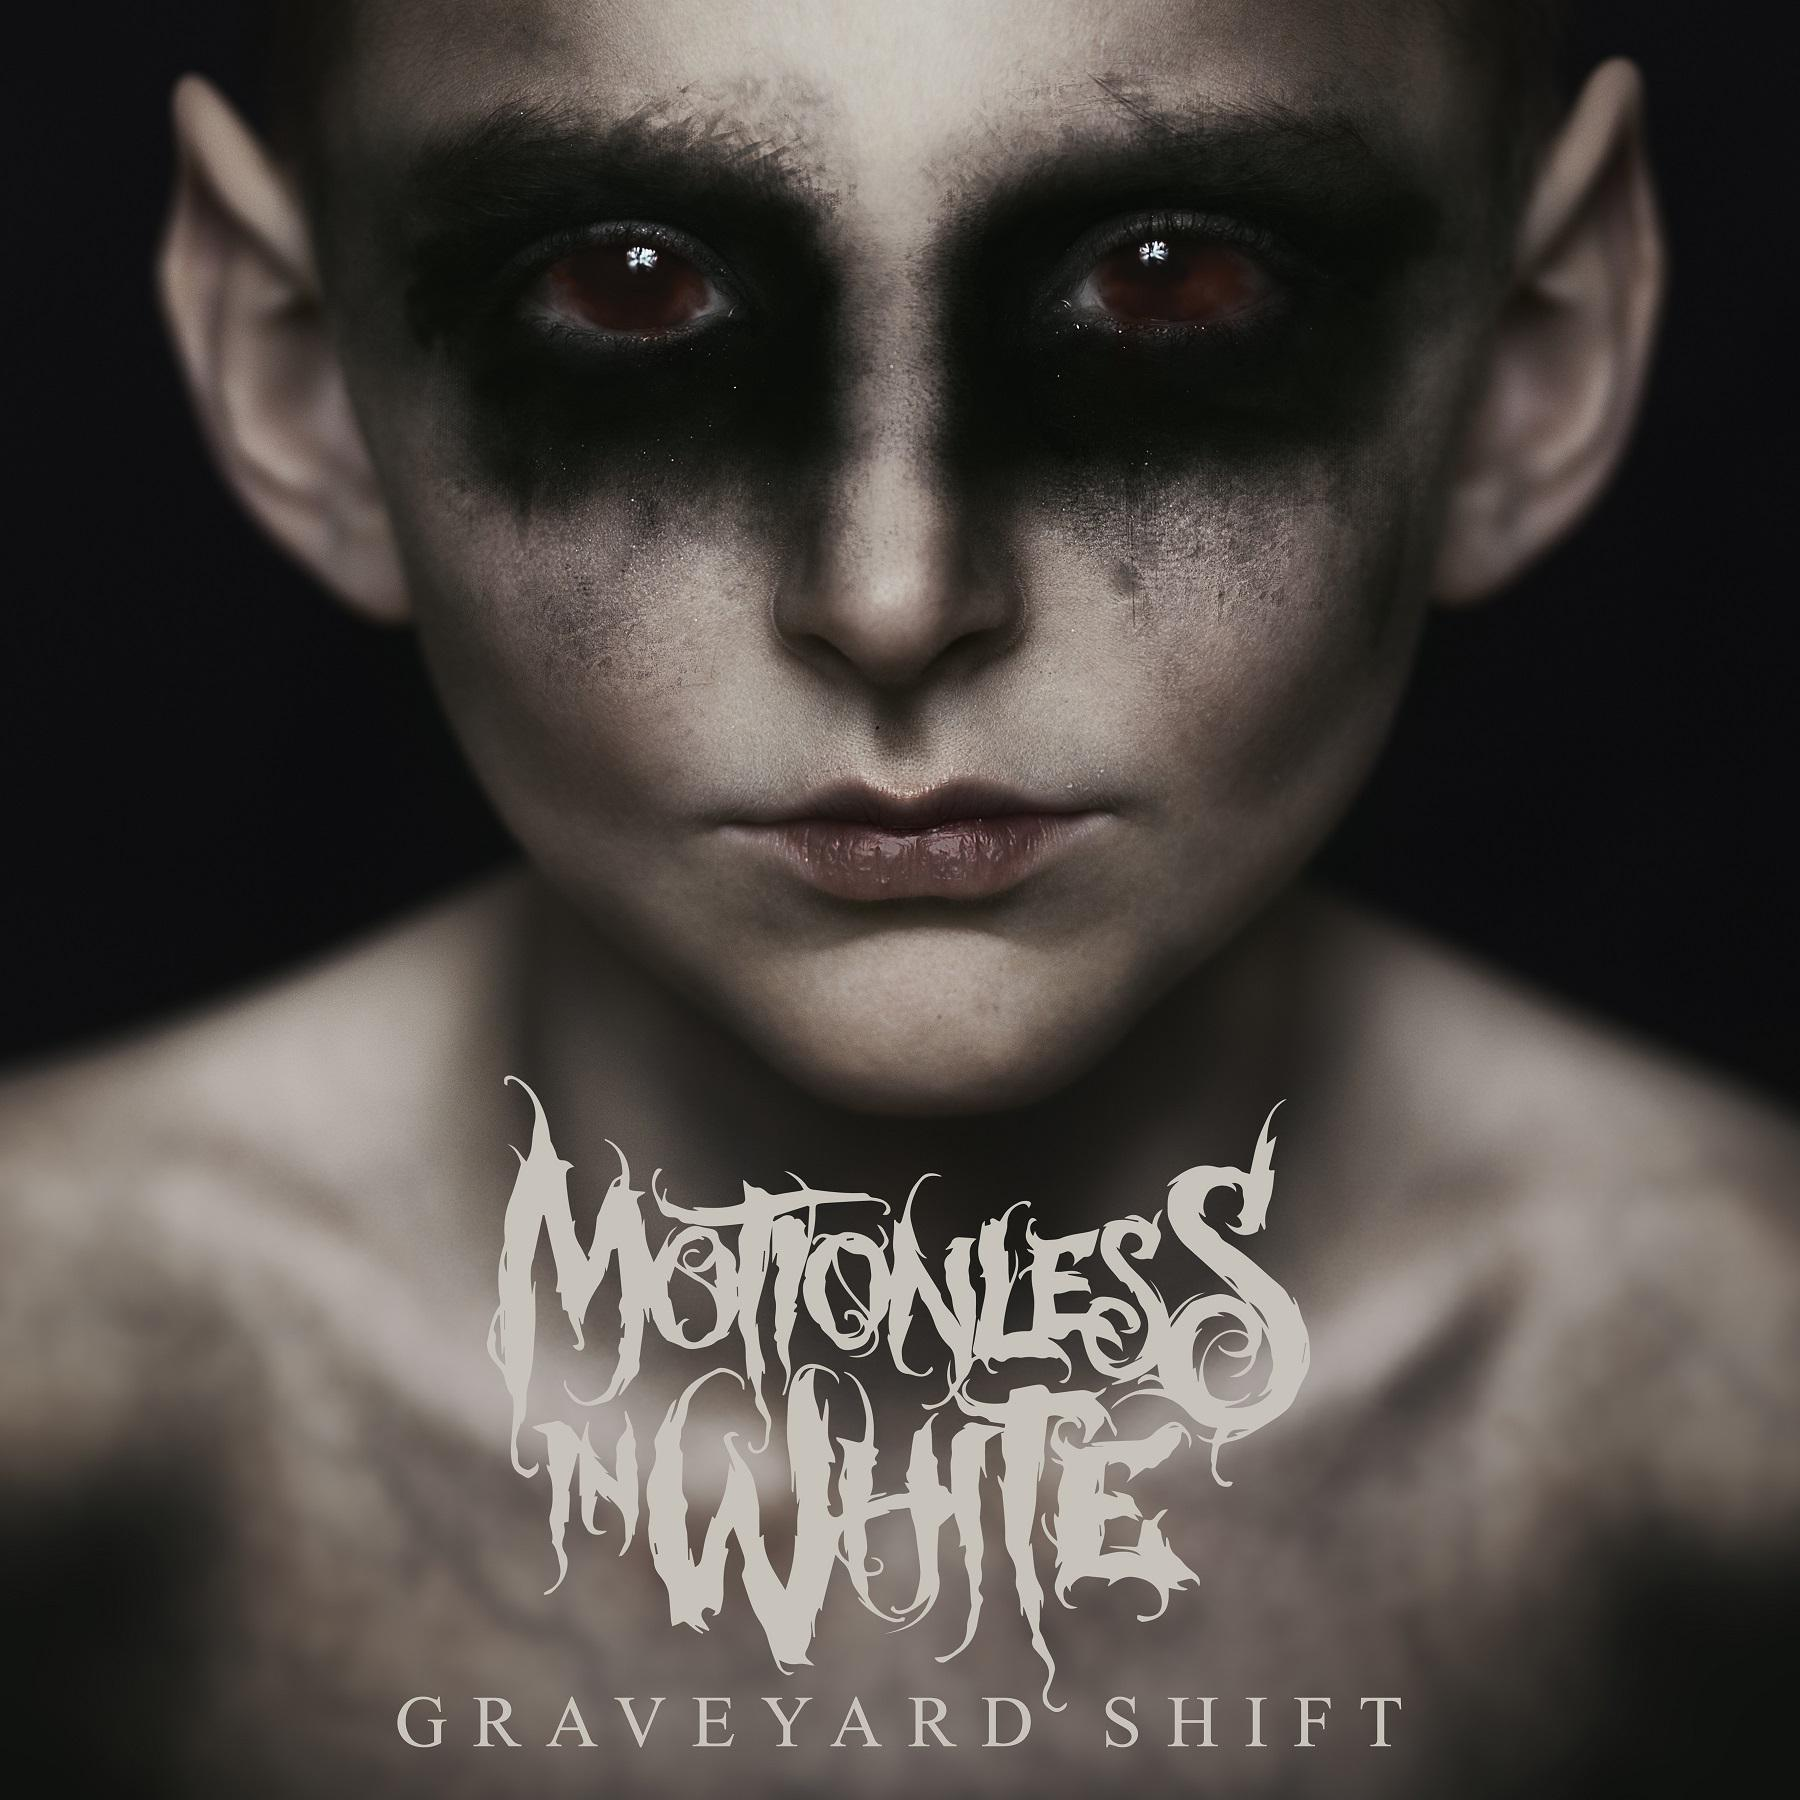 hight resolution of album review motionless in white graveyard shift ghost cult magazine